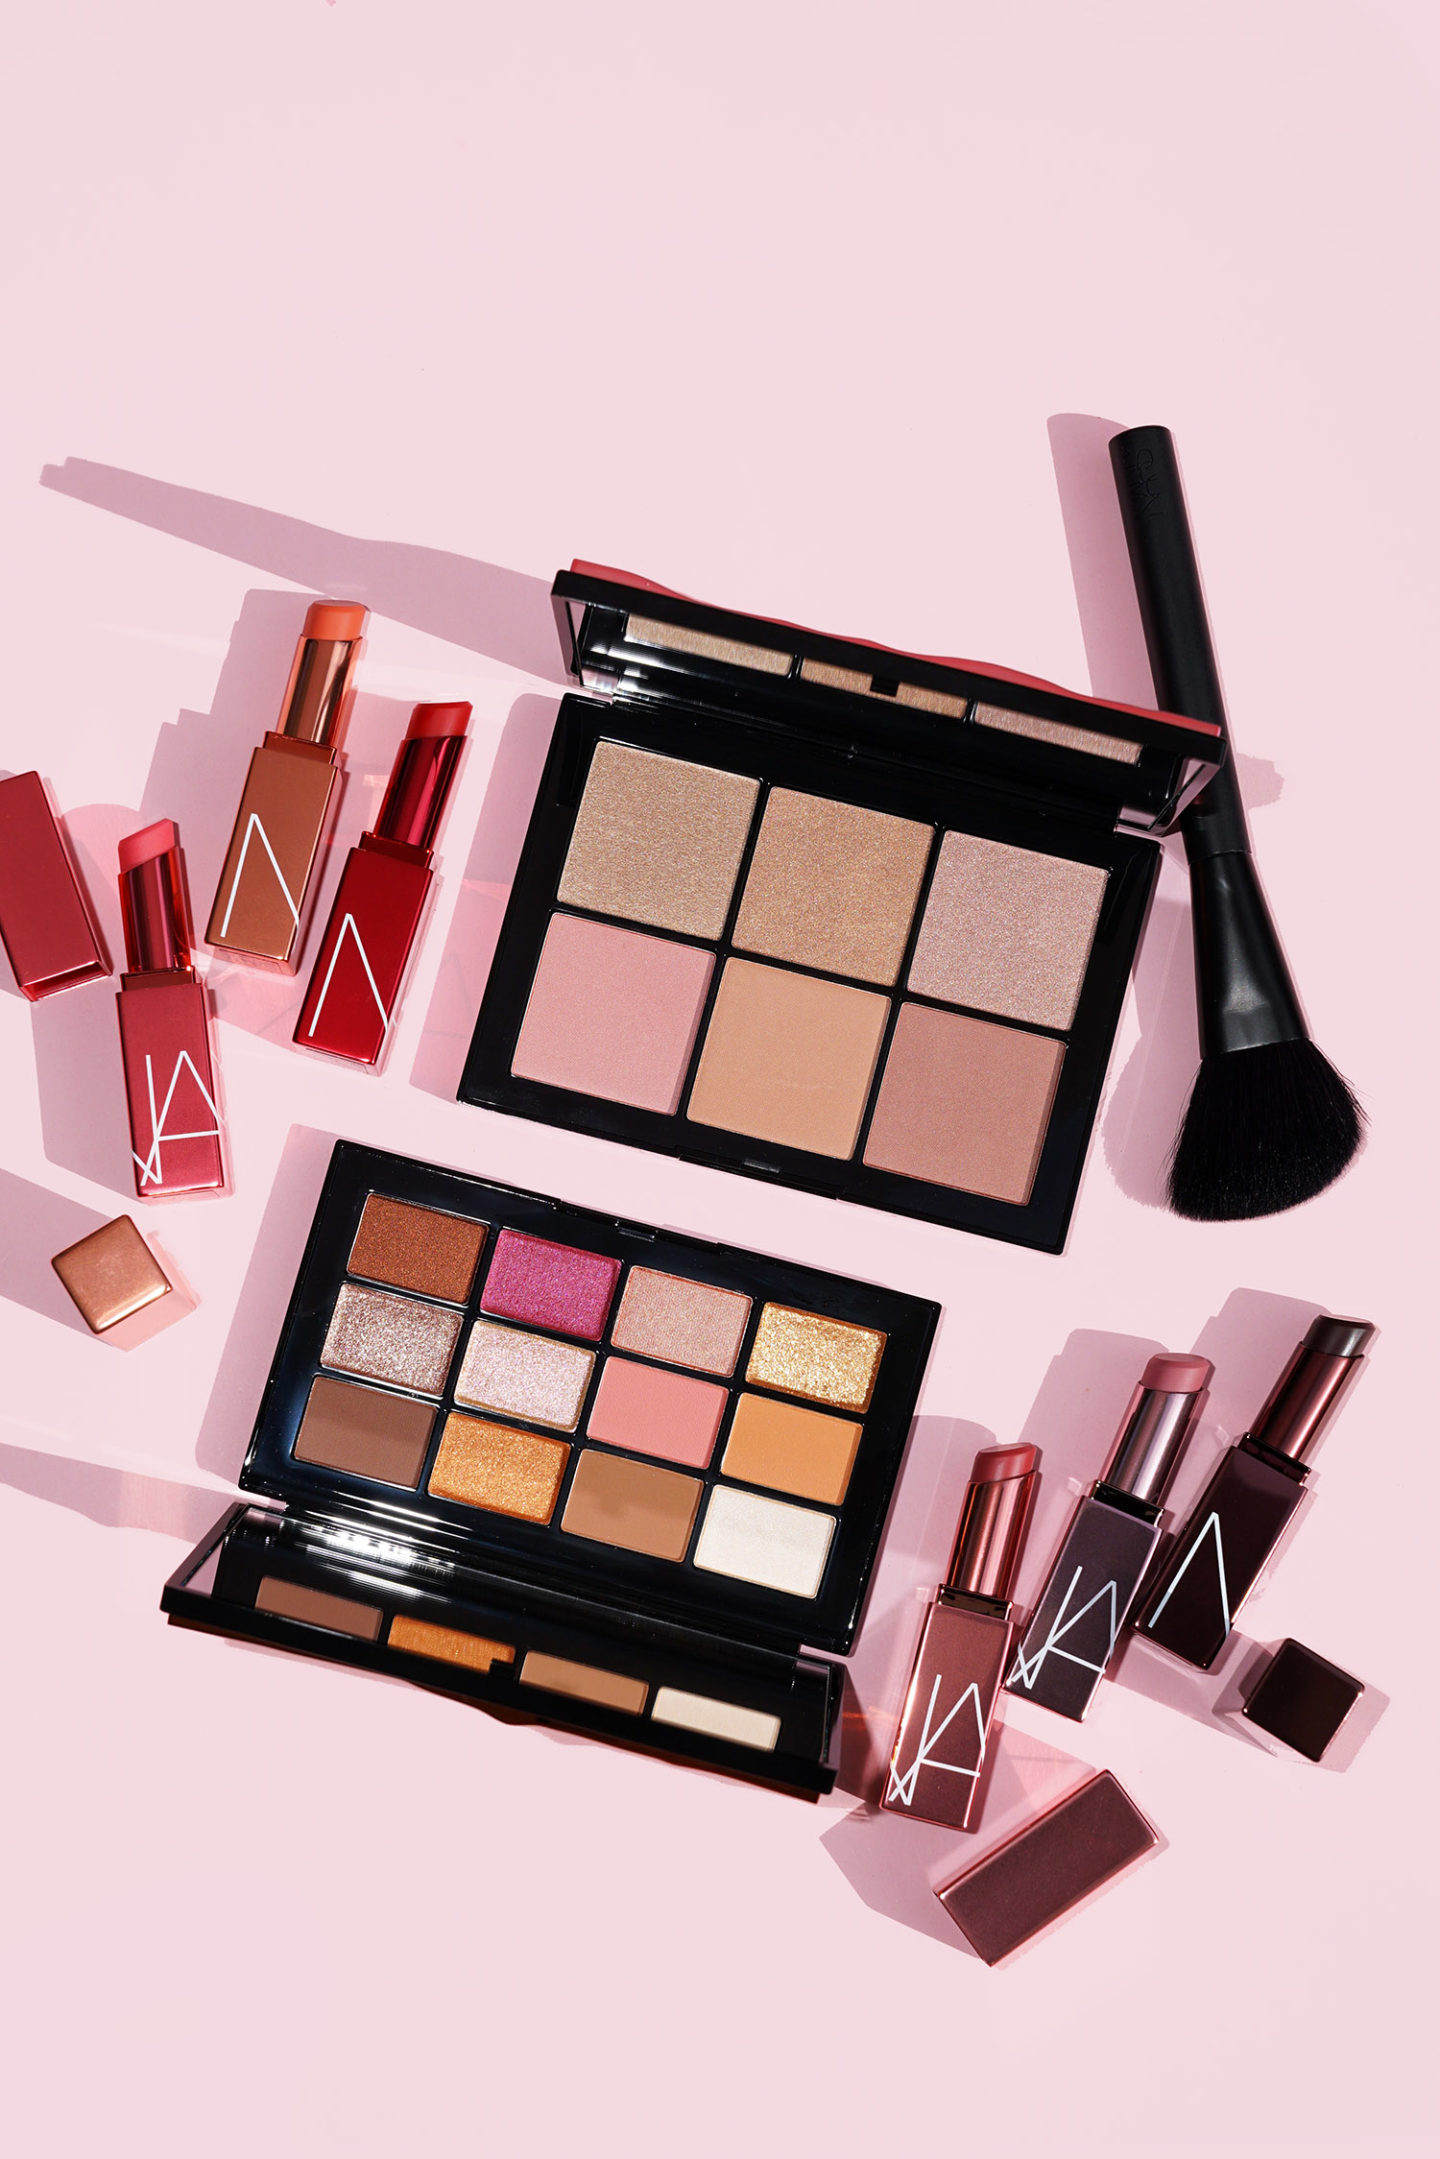 Revue de la collection NARS Afterglow de Beauty Look Book